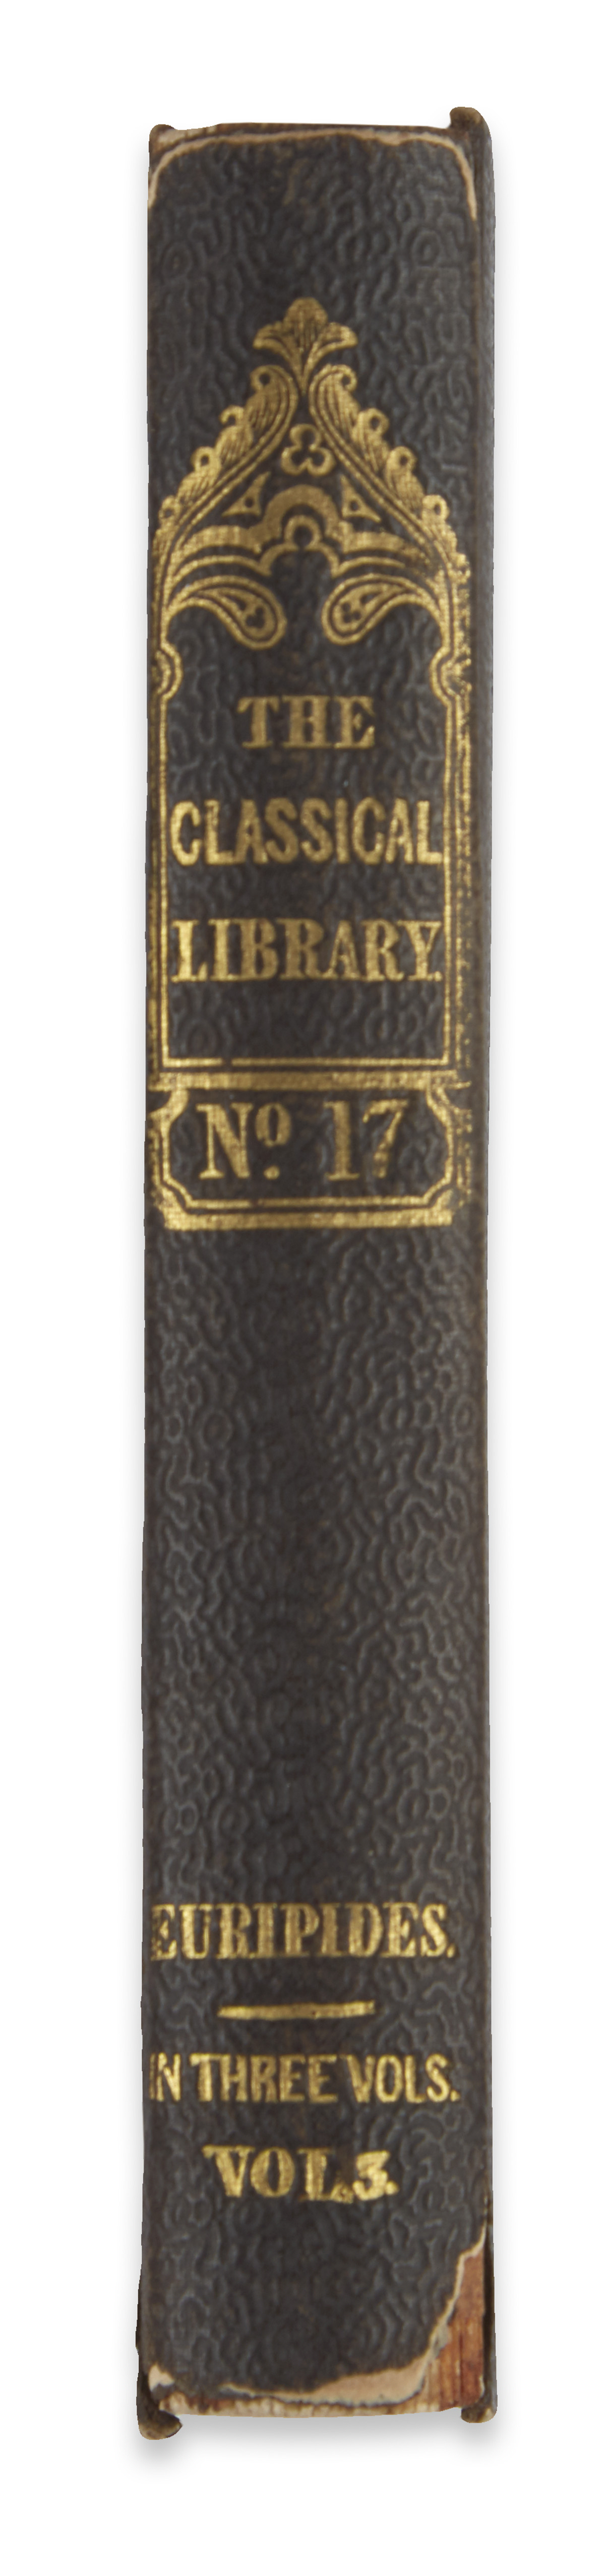 MELVILLE-HERMAN-Two-volumes-the-first-Signed-H-Melville--NY-